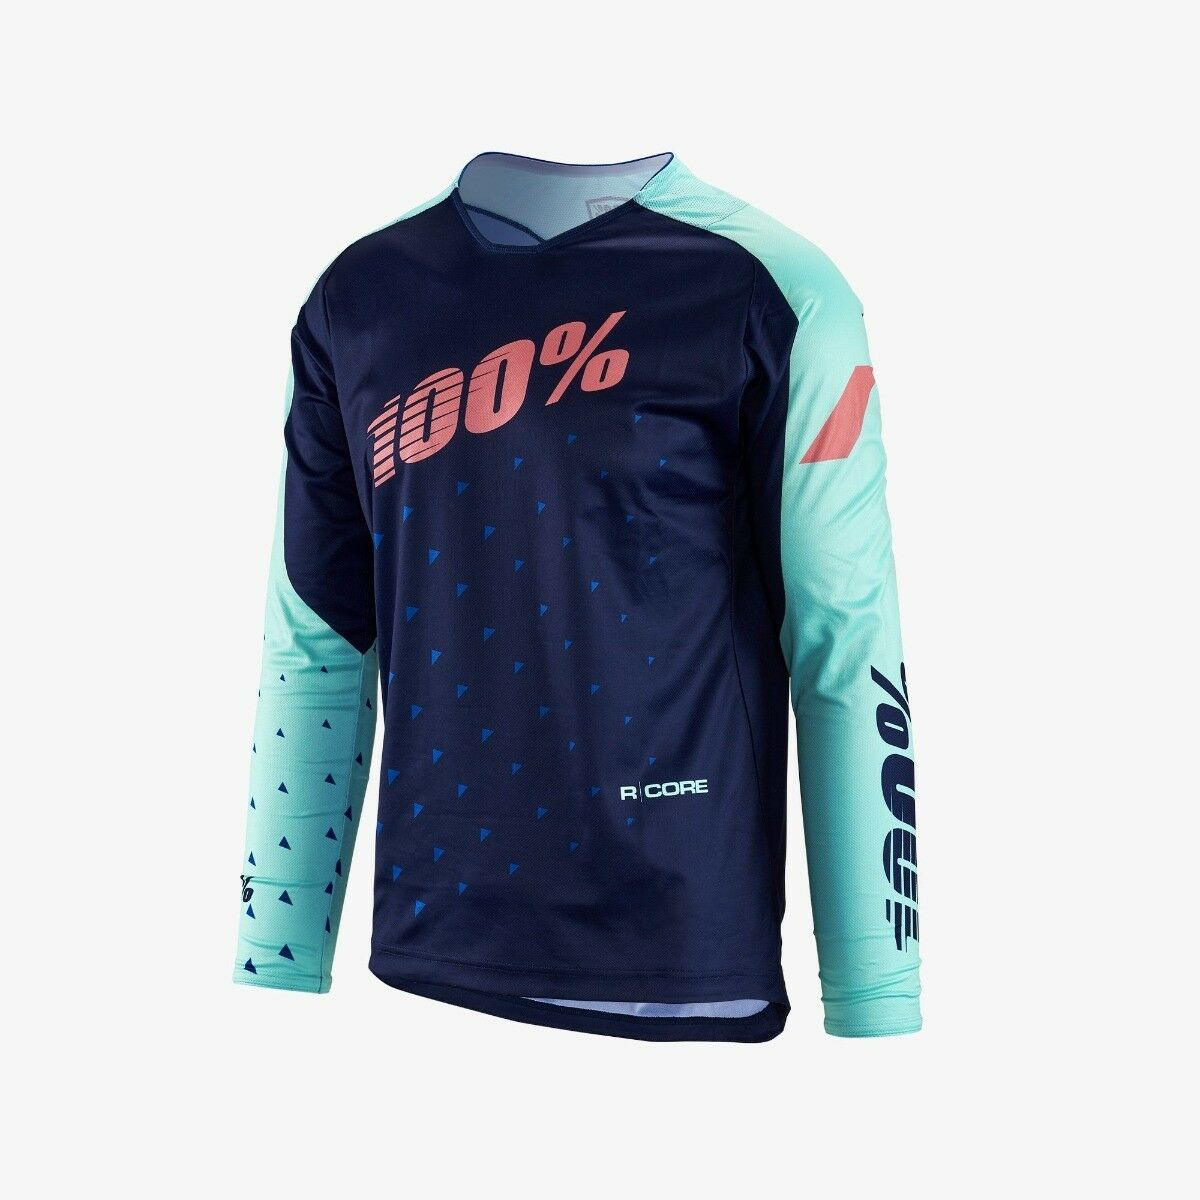 100% RCore DH Jersey Navy XLG